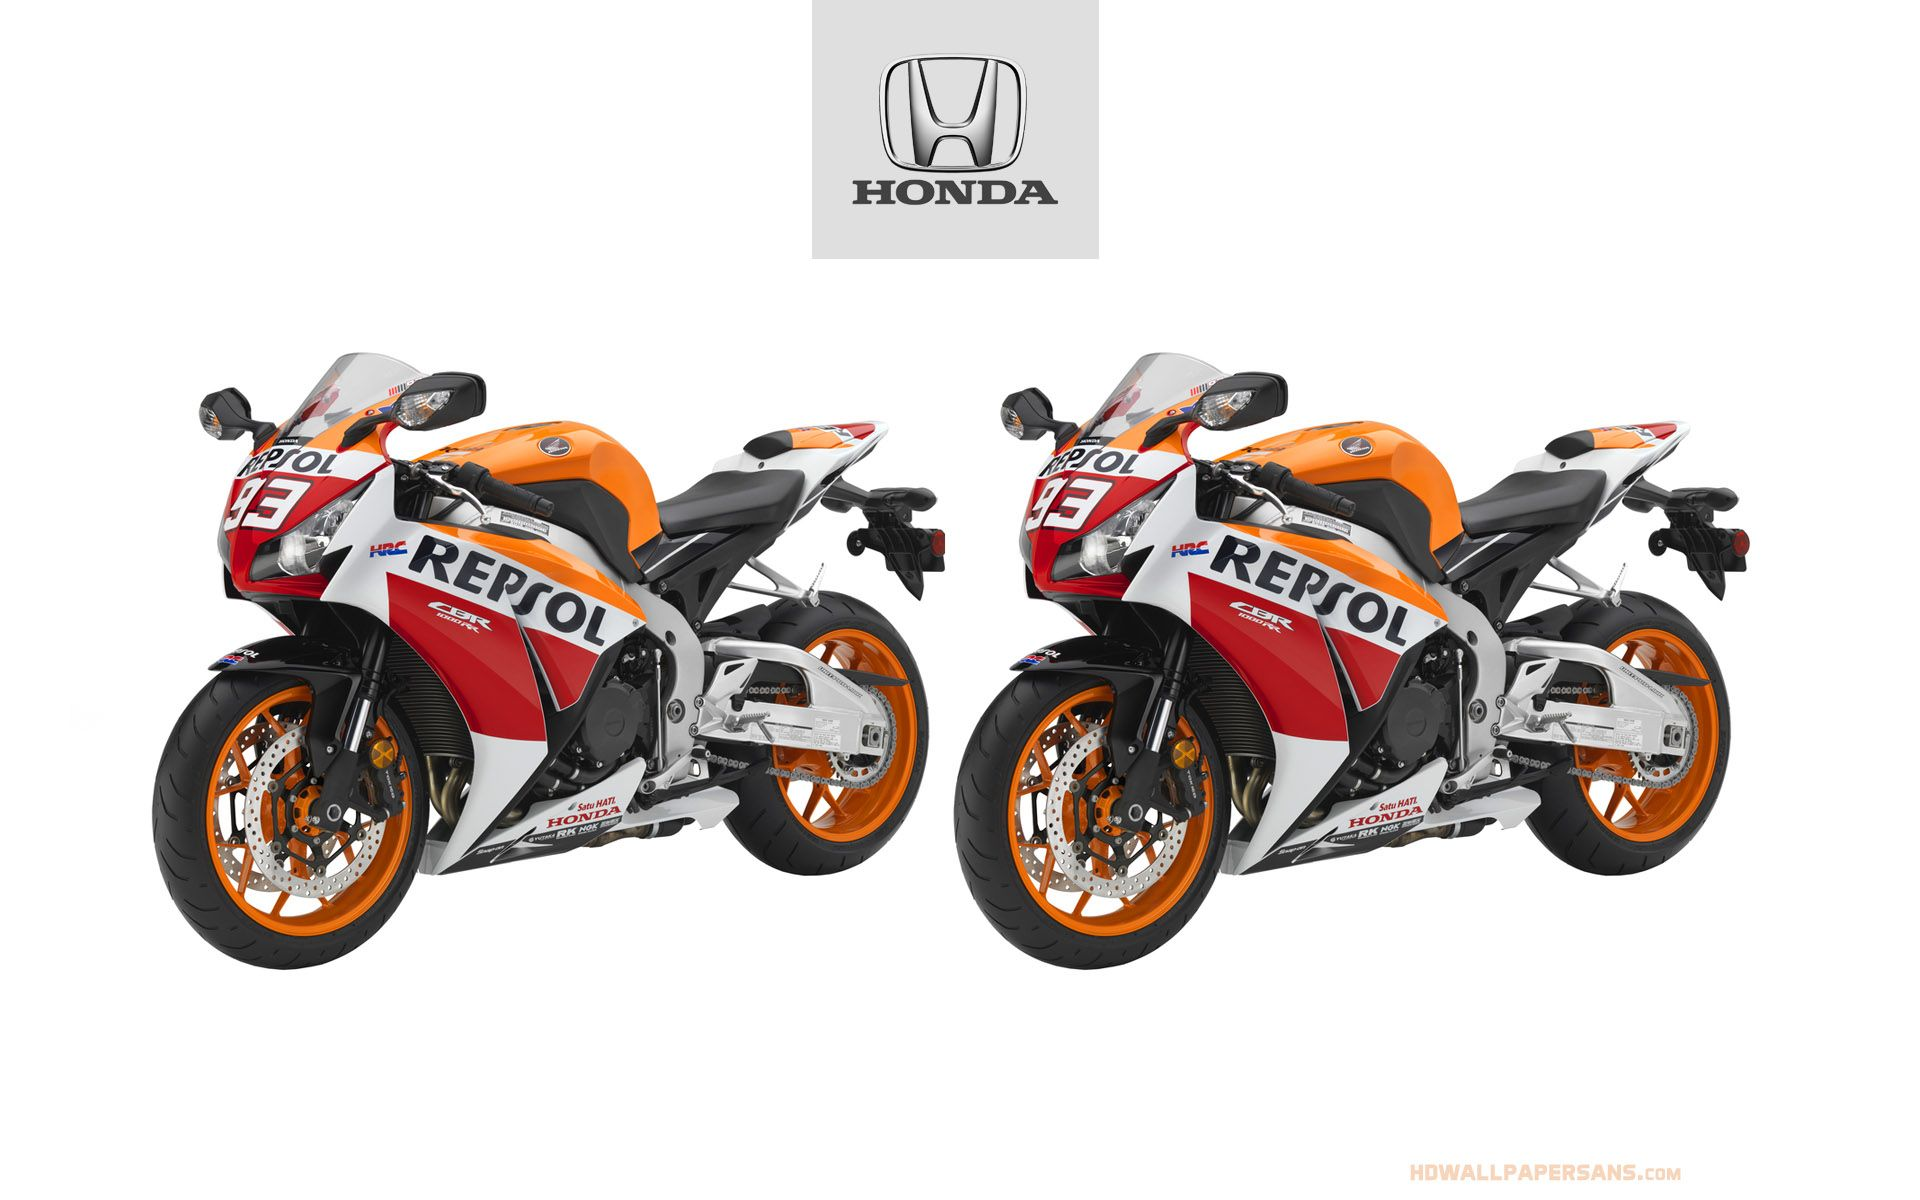 Honda Repsol Wallpaper Motorcycle: Honda CBR Repsol Wallpapers